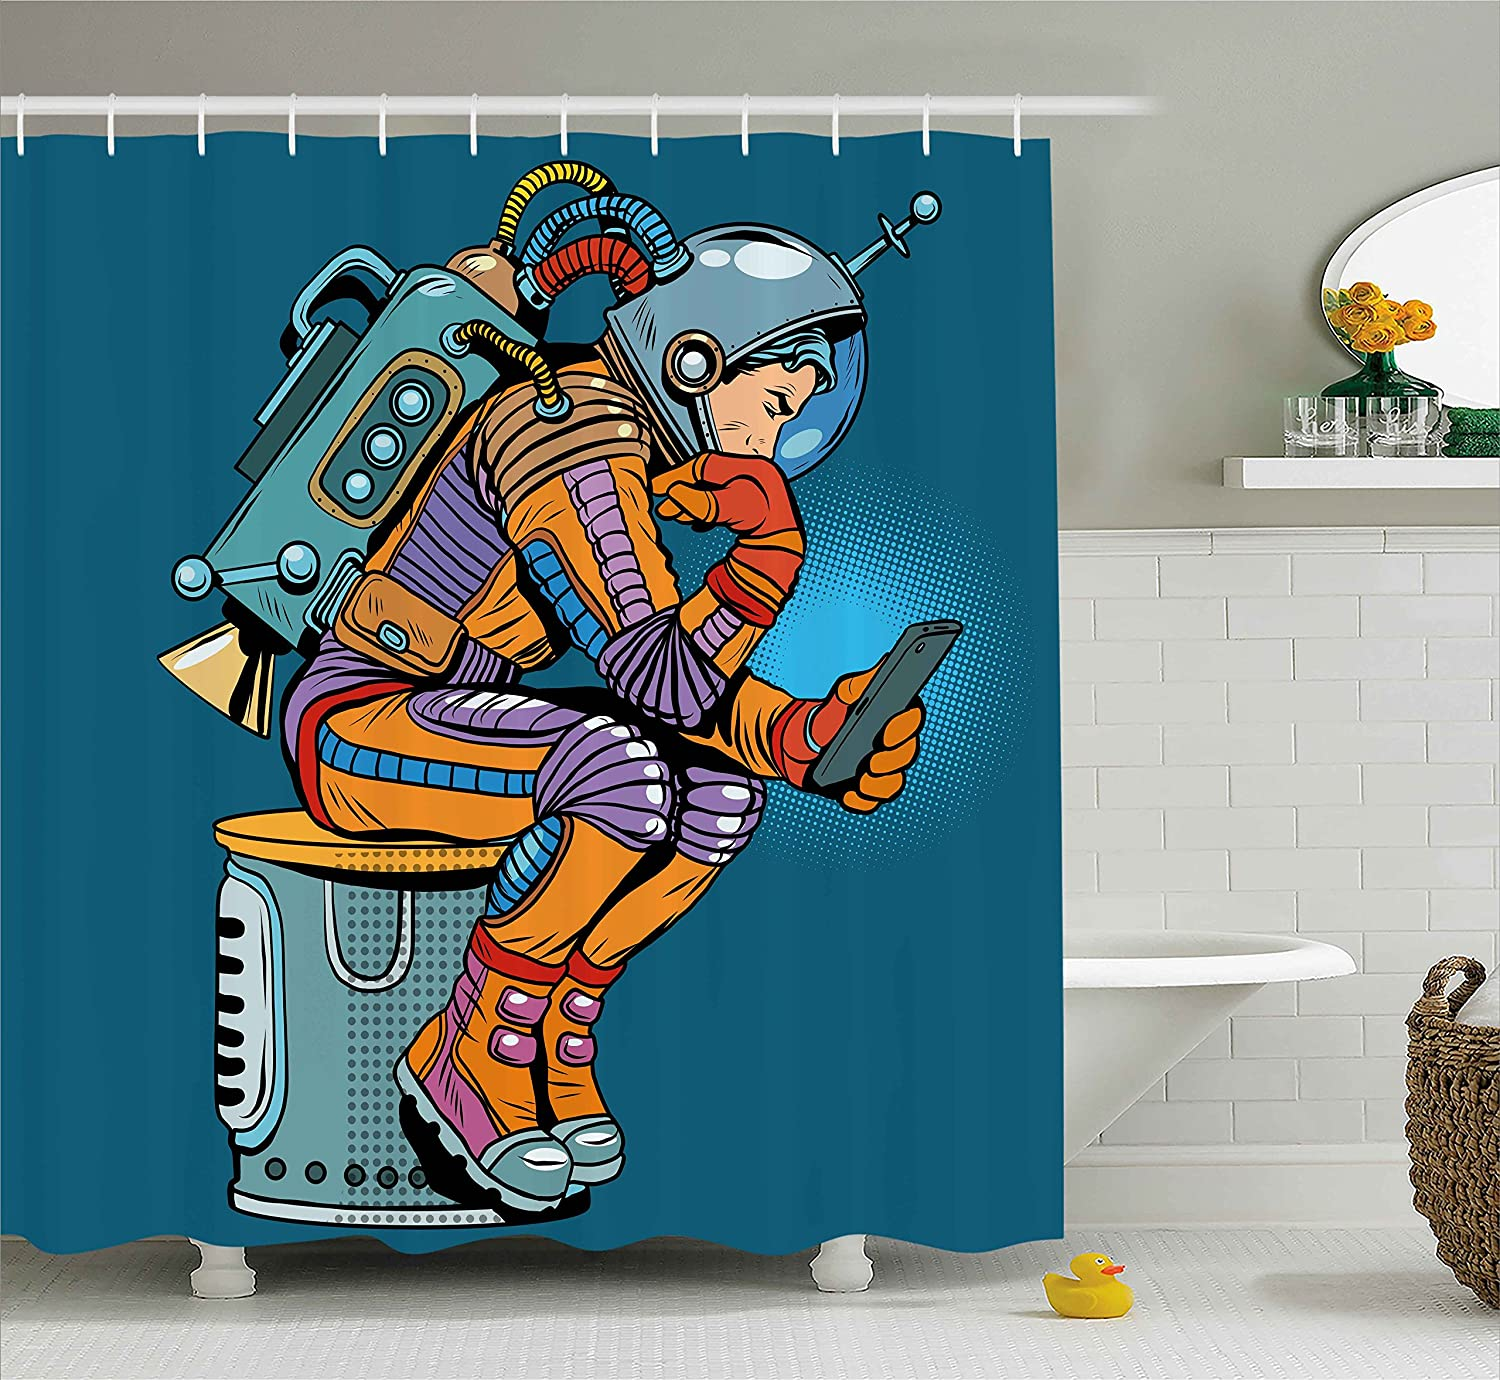 Ambesonne Outer Space Shower Curtain by, Illustration of Astronaut with a Smartphone Pop Art Retro Style, Fabric Bathroom Decor Set with Hooks, 70 Inches, Petrol Blue and Marigold